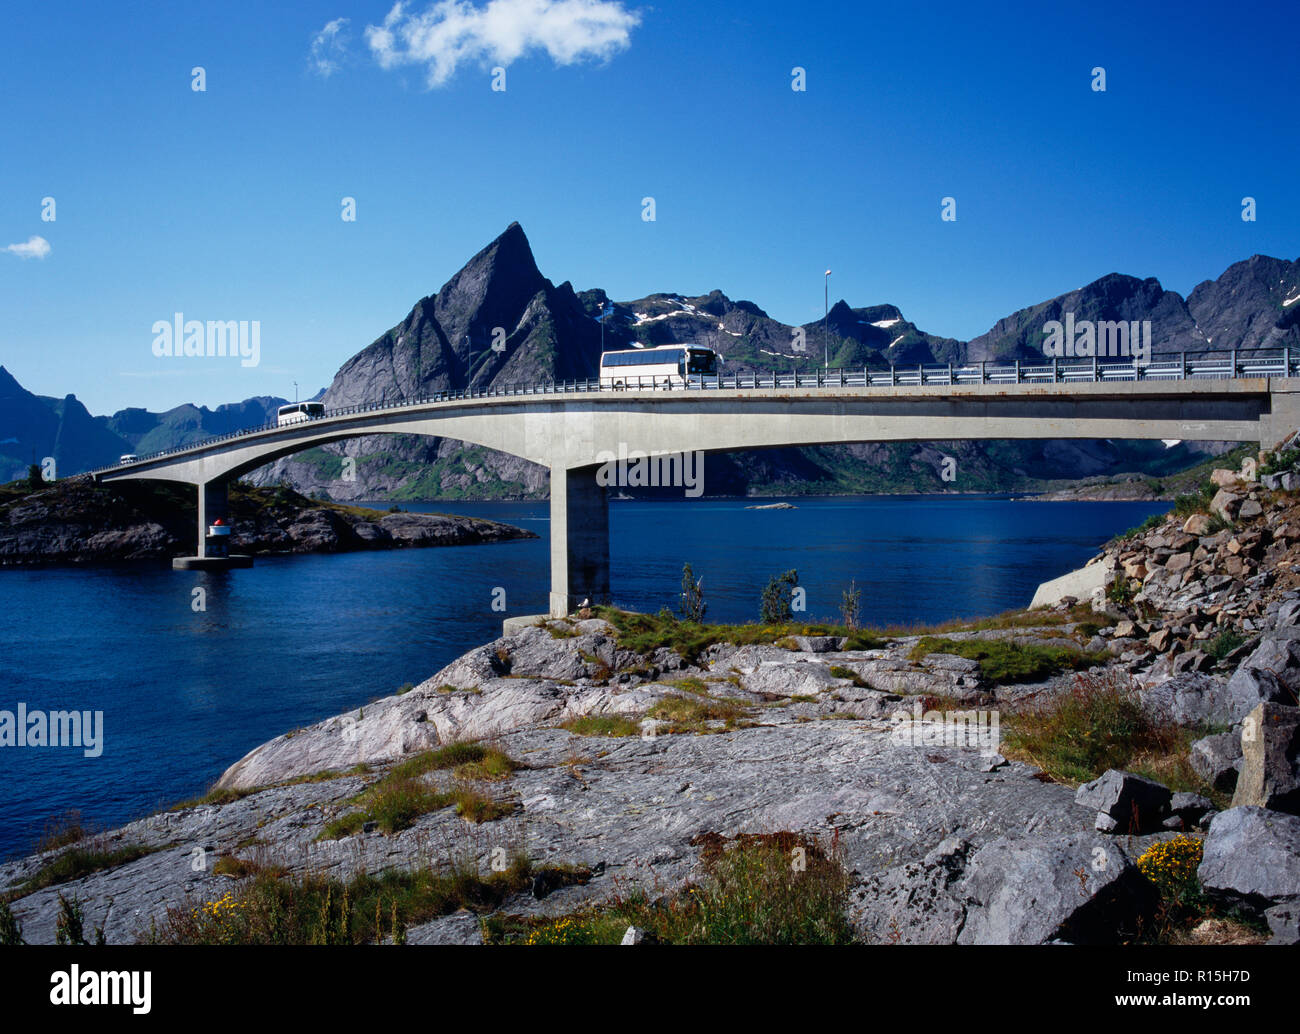 Norway, Lofotens, Moskenesoya, Bridge linking the villages of Reine and Hamnoy with two buses crossing and Mt. Olstinden 675 metres in background. - Stock Image